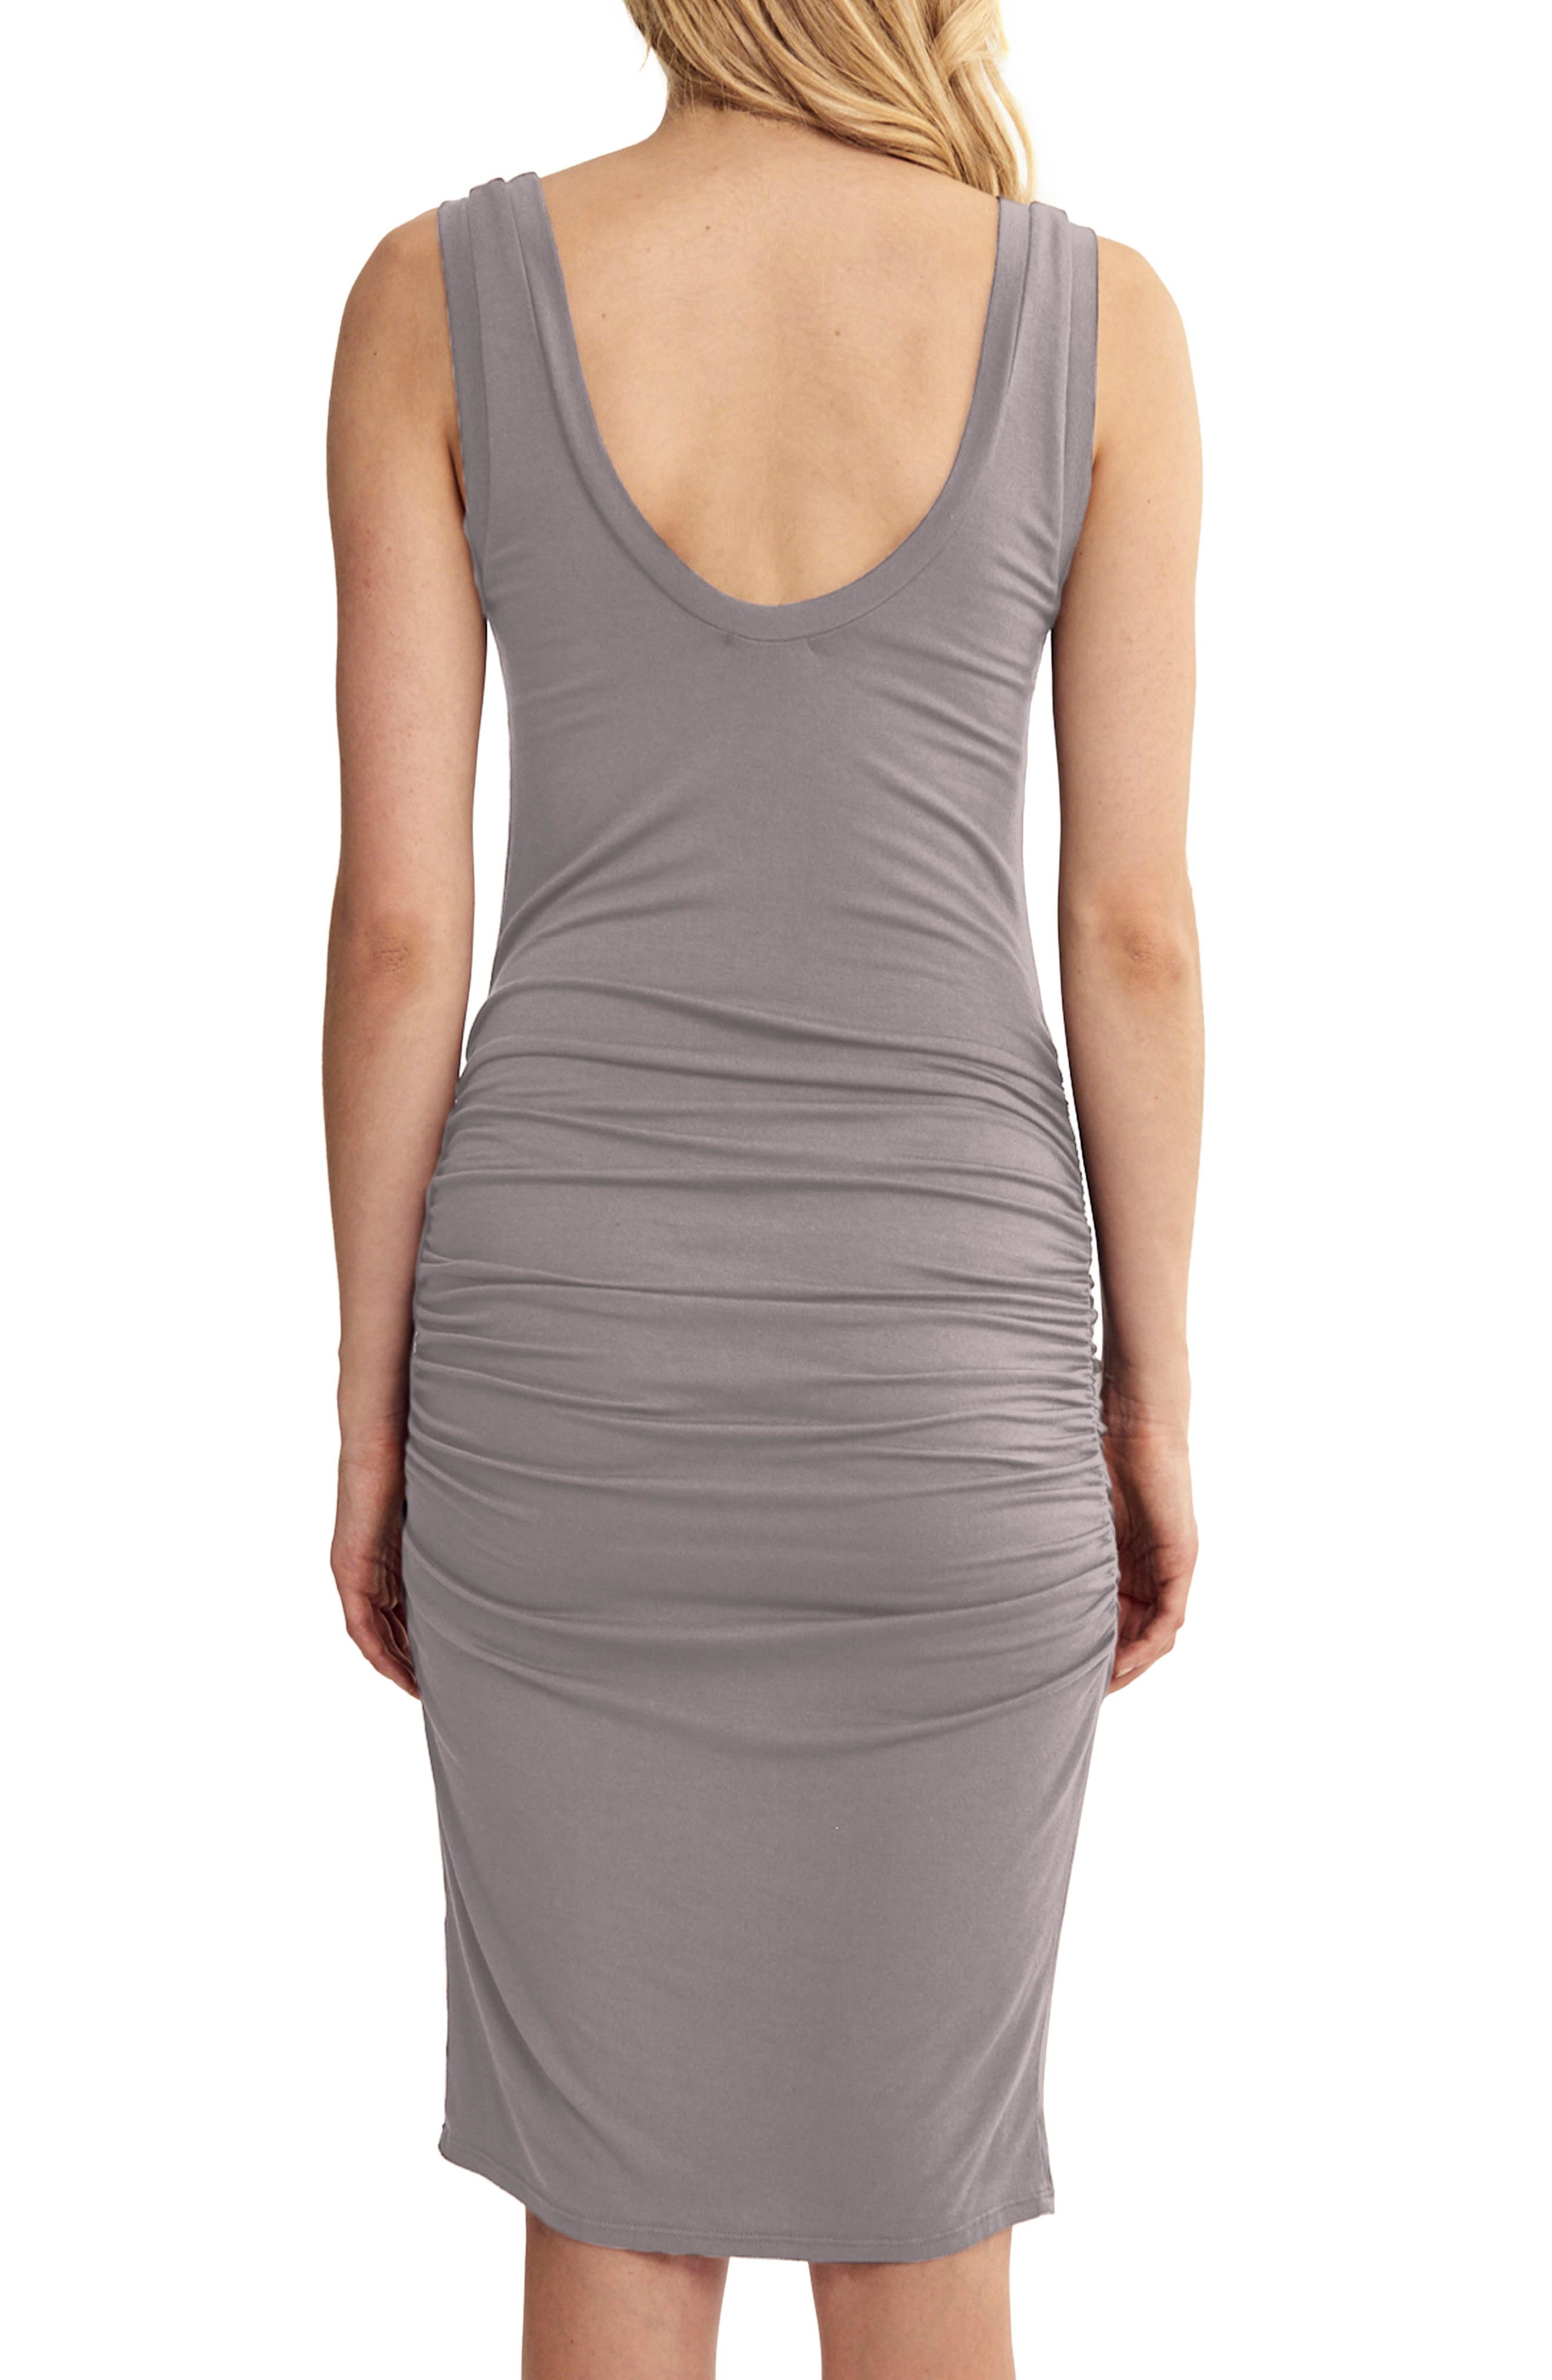 'Frankie' Ruched Tank Dress,                             Alternate thumbnail 2, color,                             Peppercorn